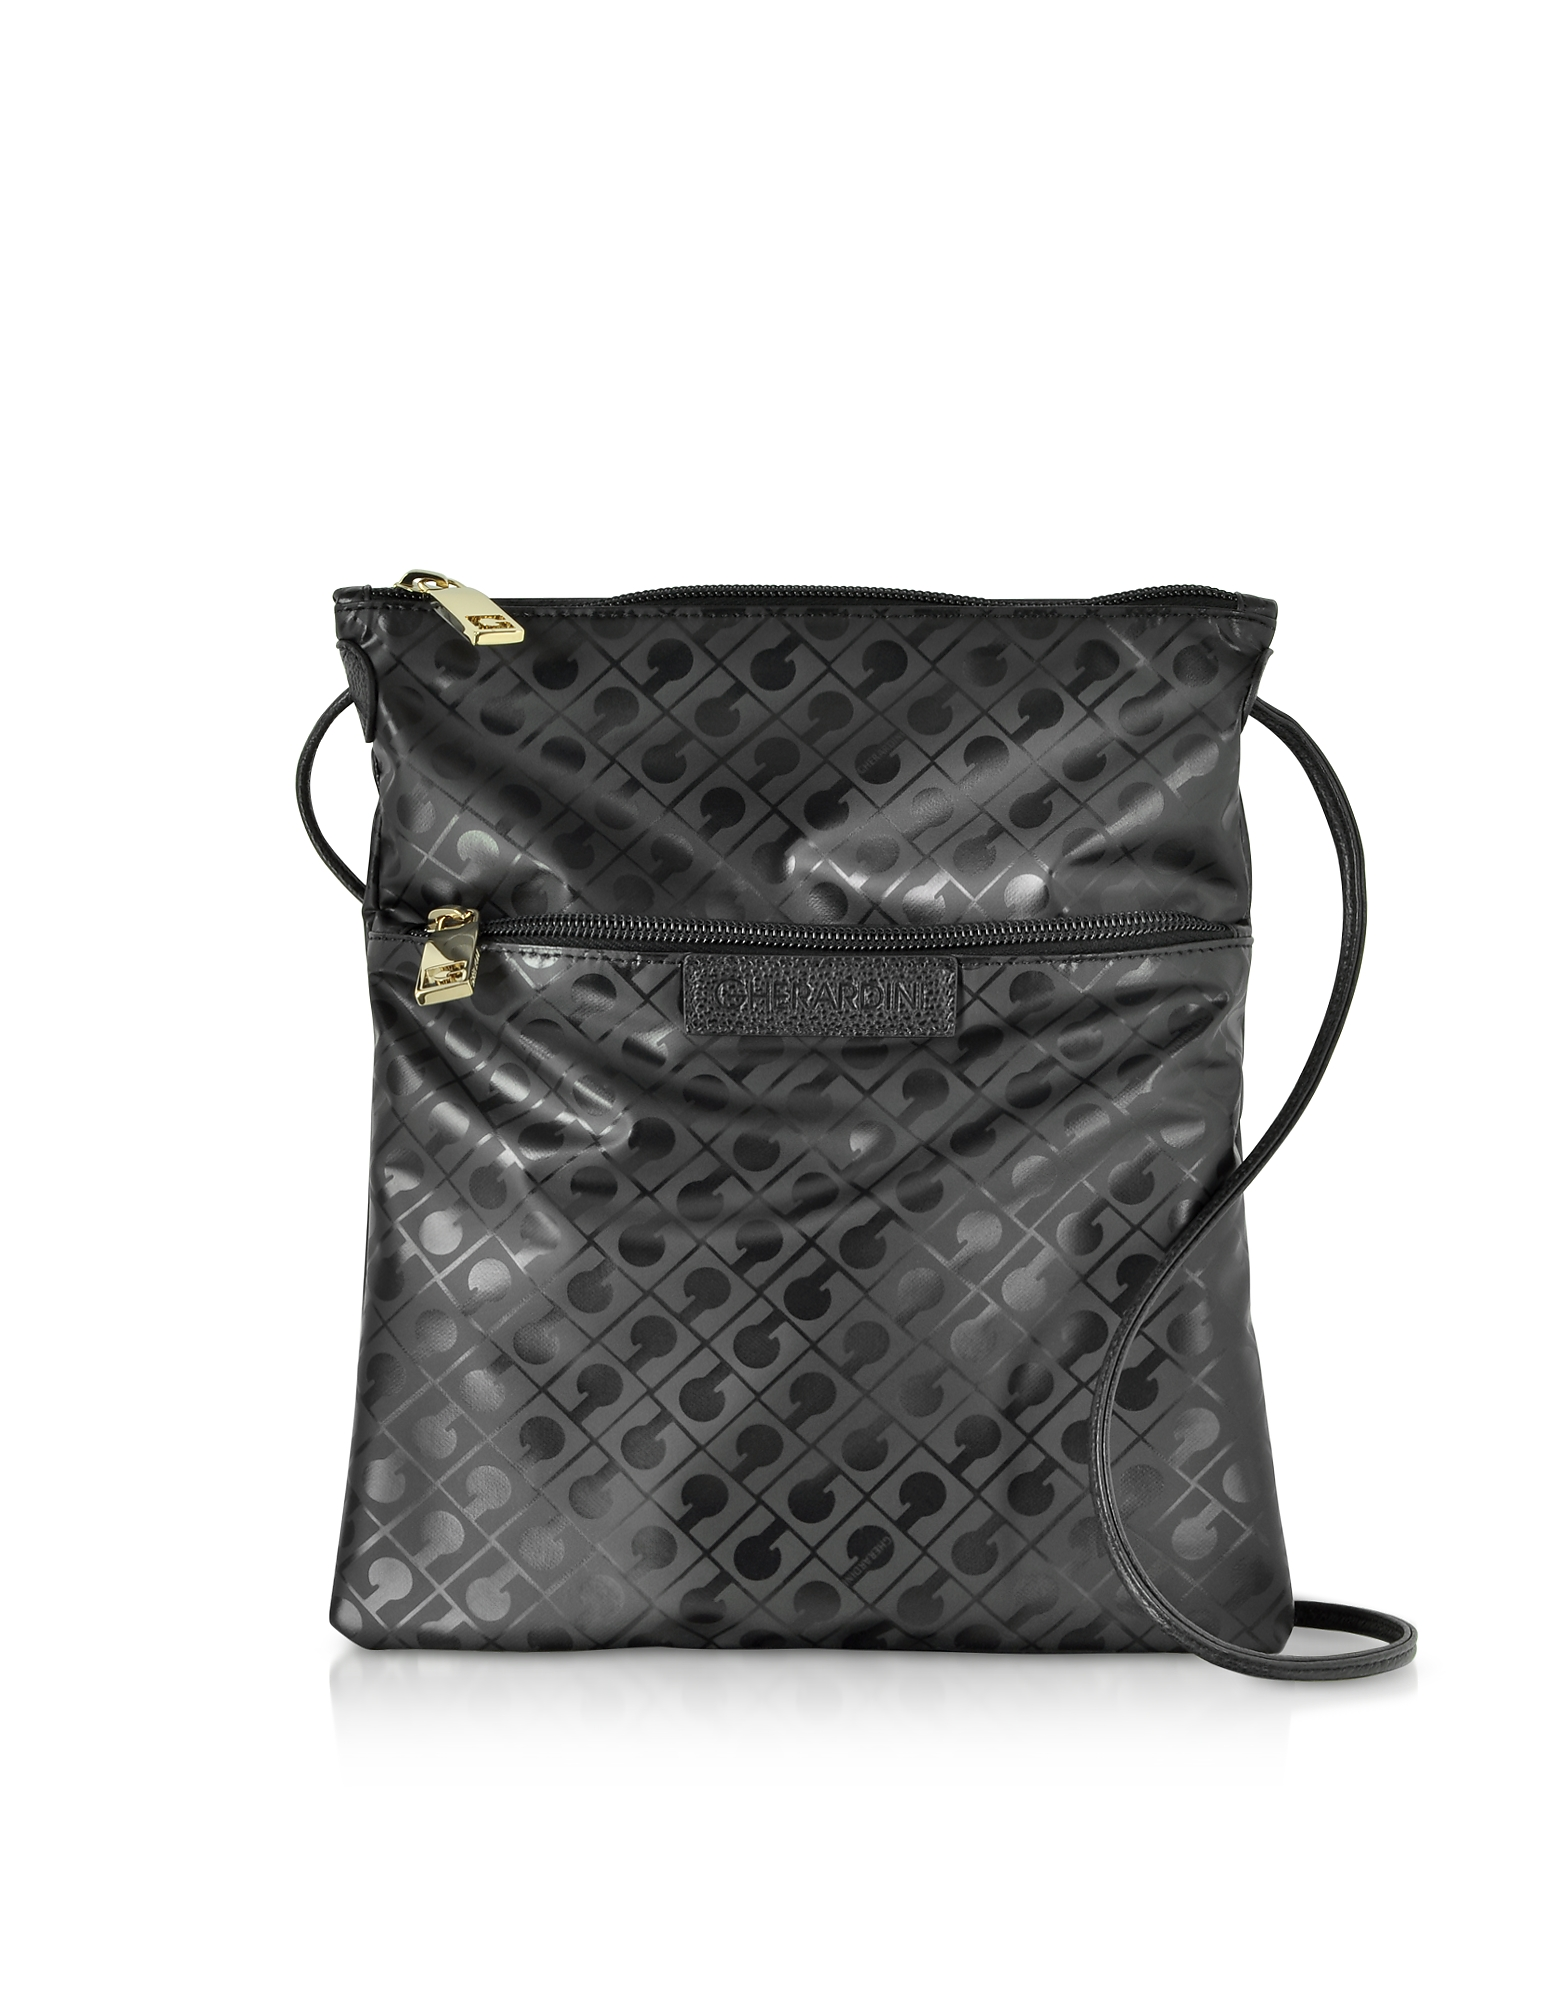 Image of Gherardini Designer Handbags, Black Signature Coated Canvas and Leather Softy Crossbody Bag w/Zip Front Pocket